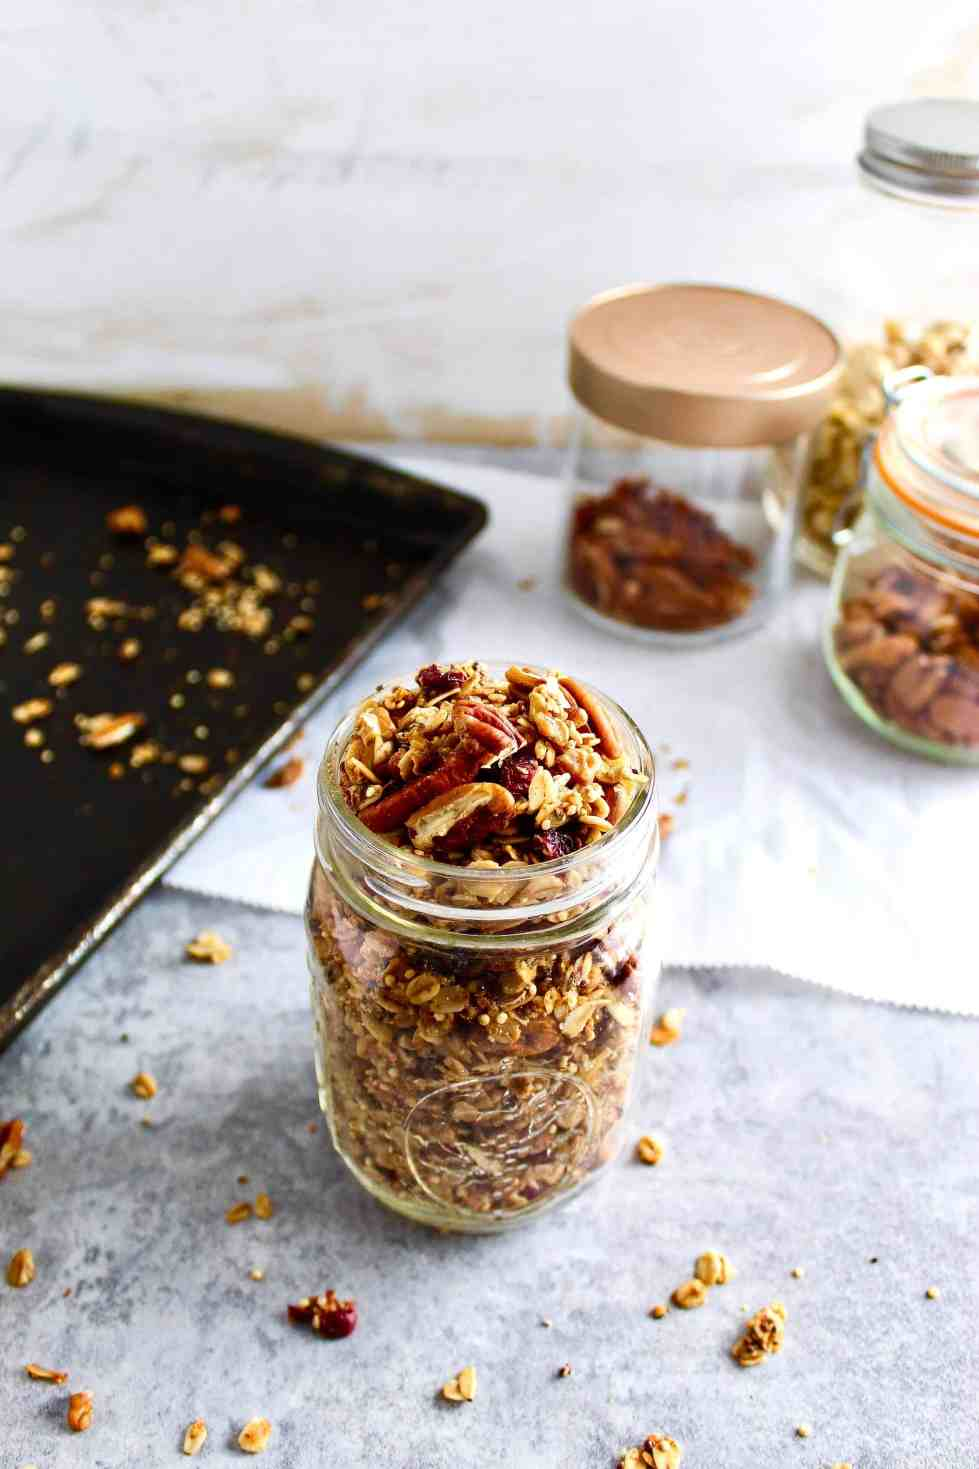 Granola in mason jar with nuts and seeds and a baking sheet in the background.